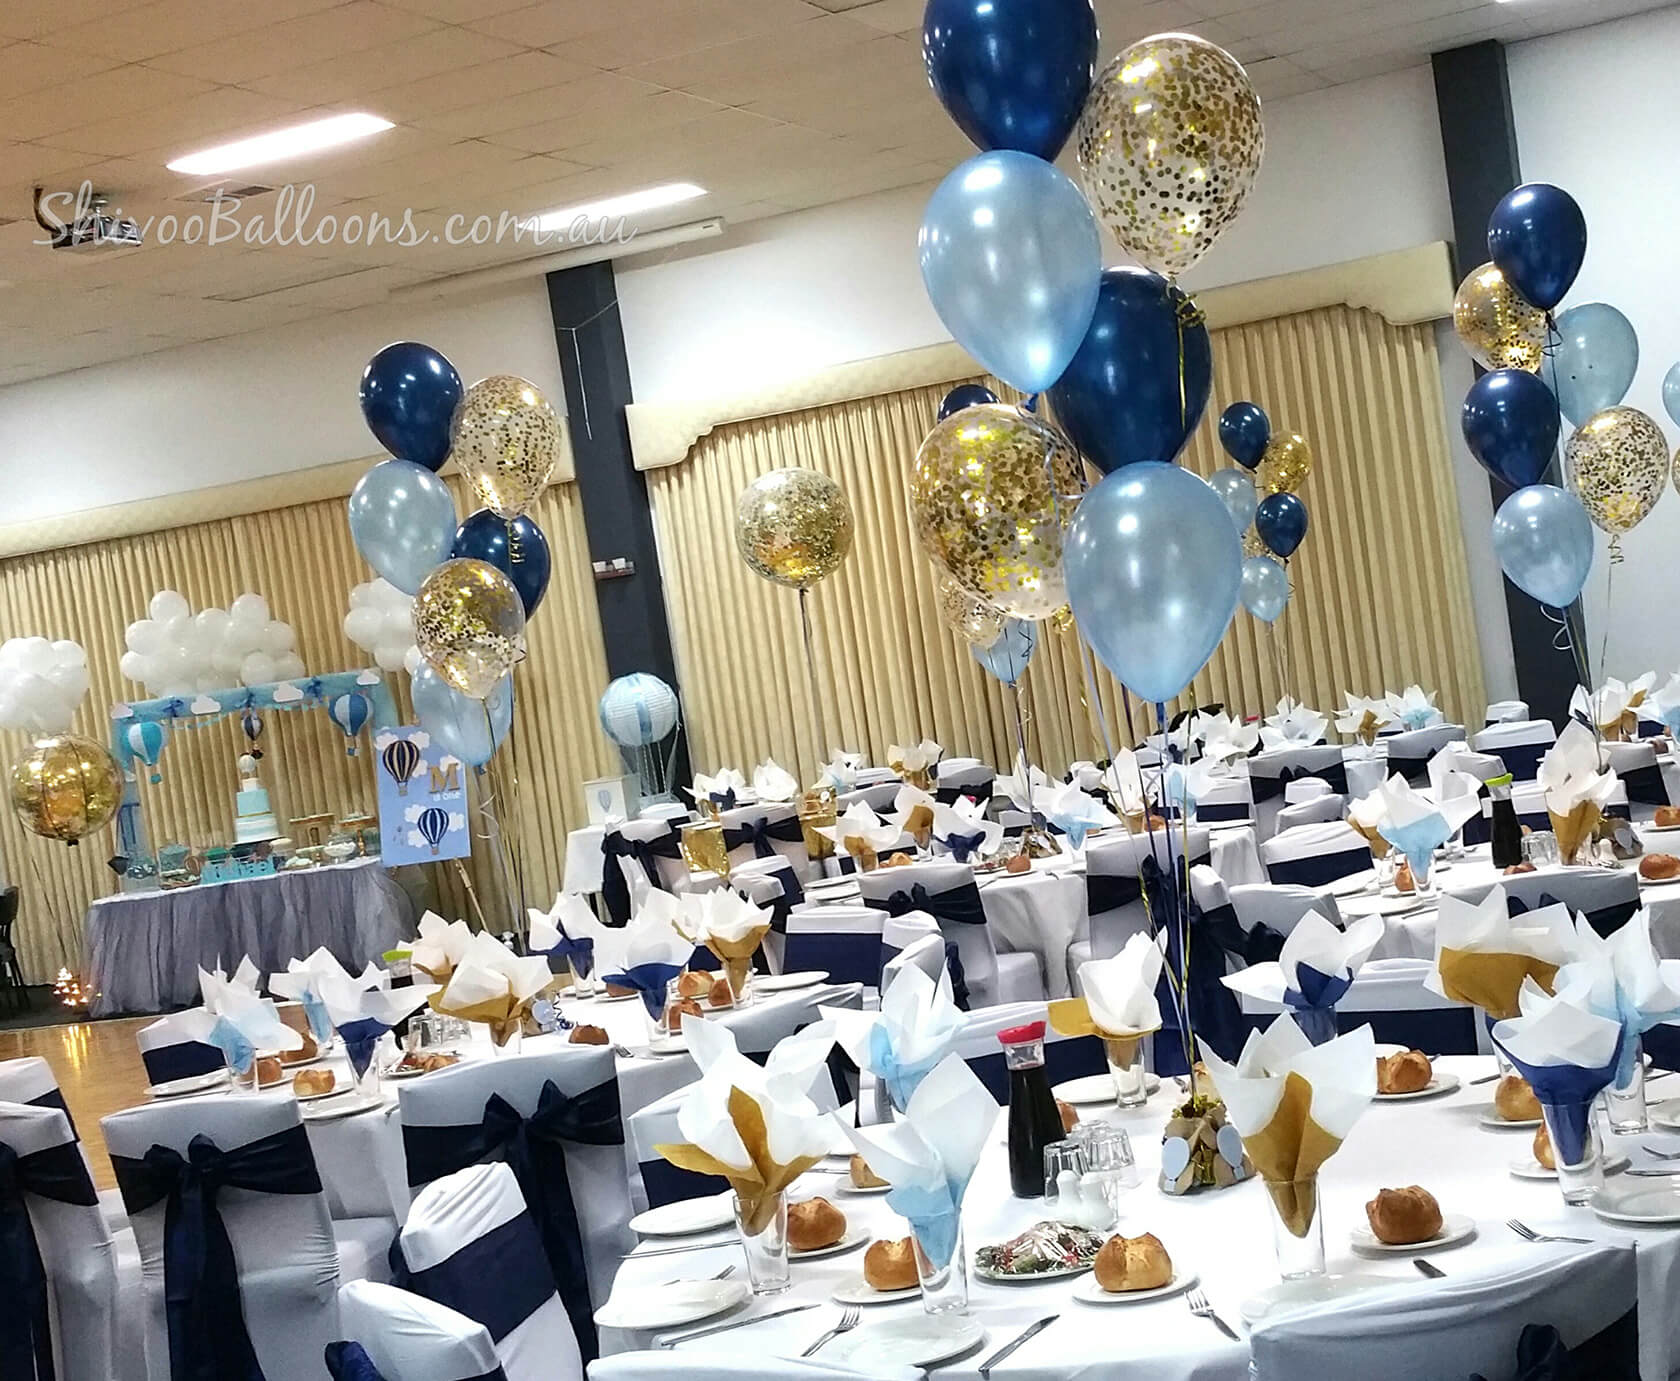 CE-64 - corporate - balloon artist Coburg North - shivoo balloons and decor specialists in coburg north